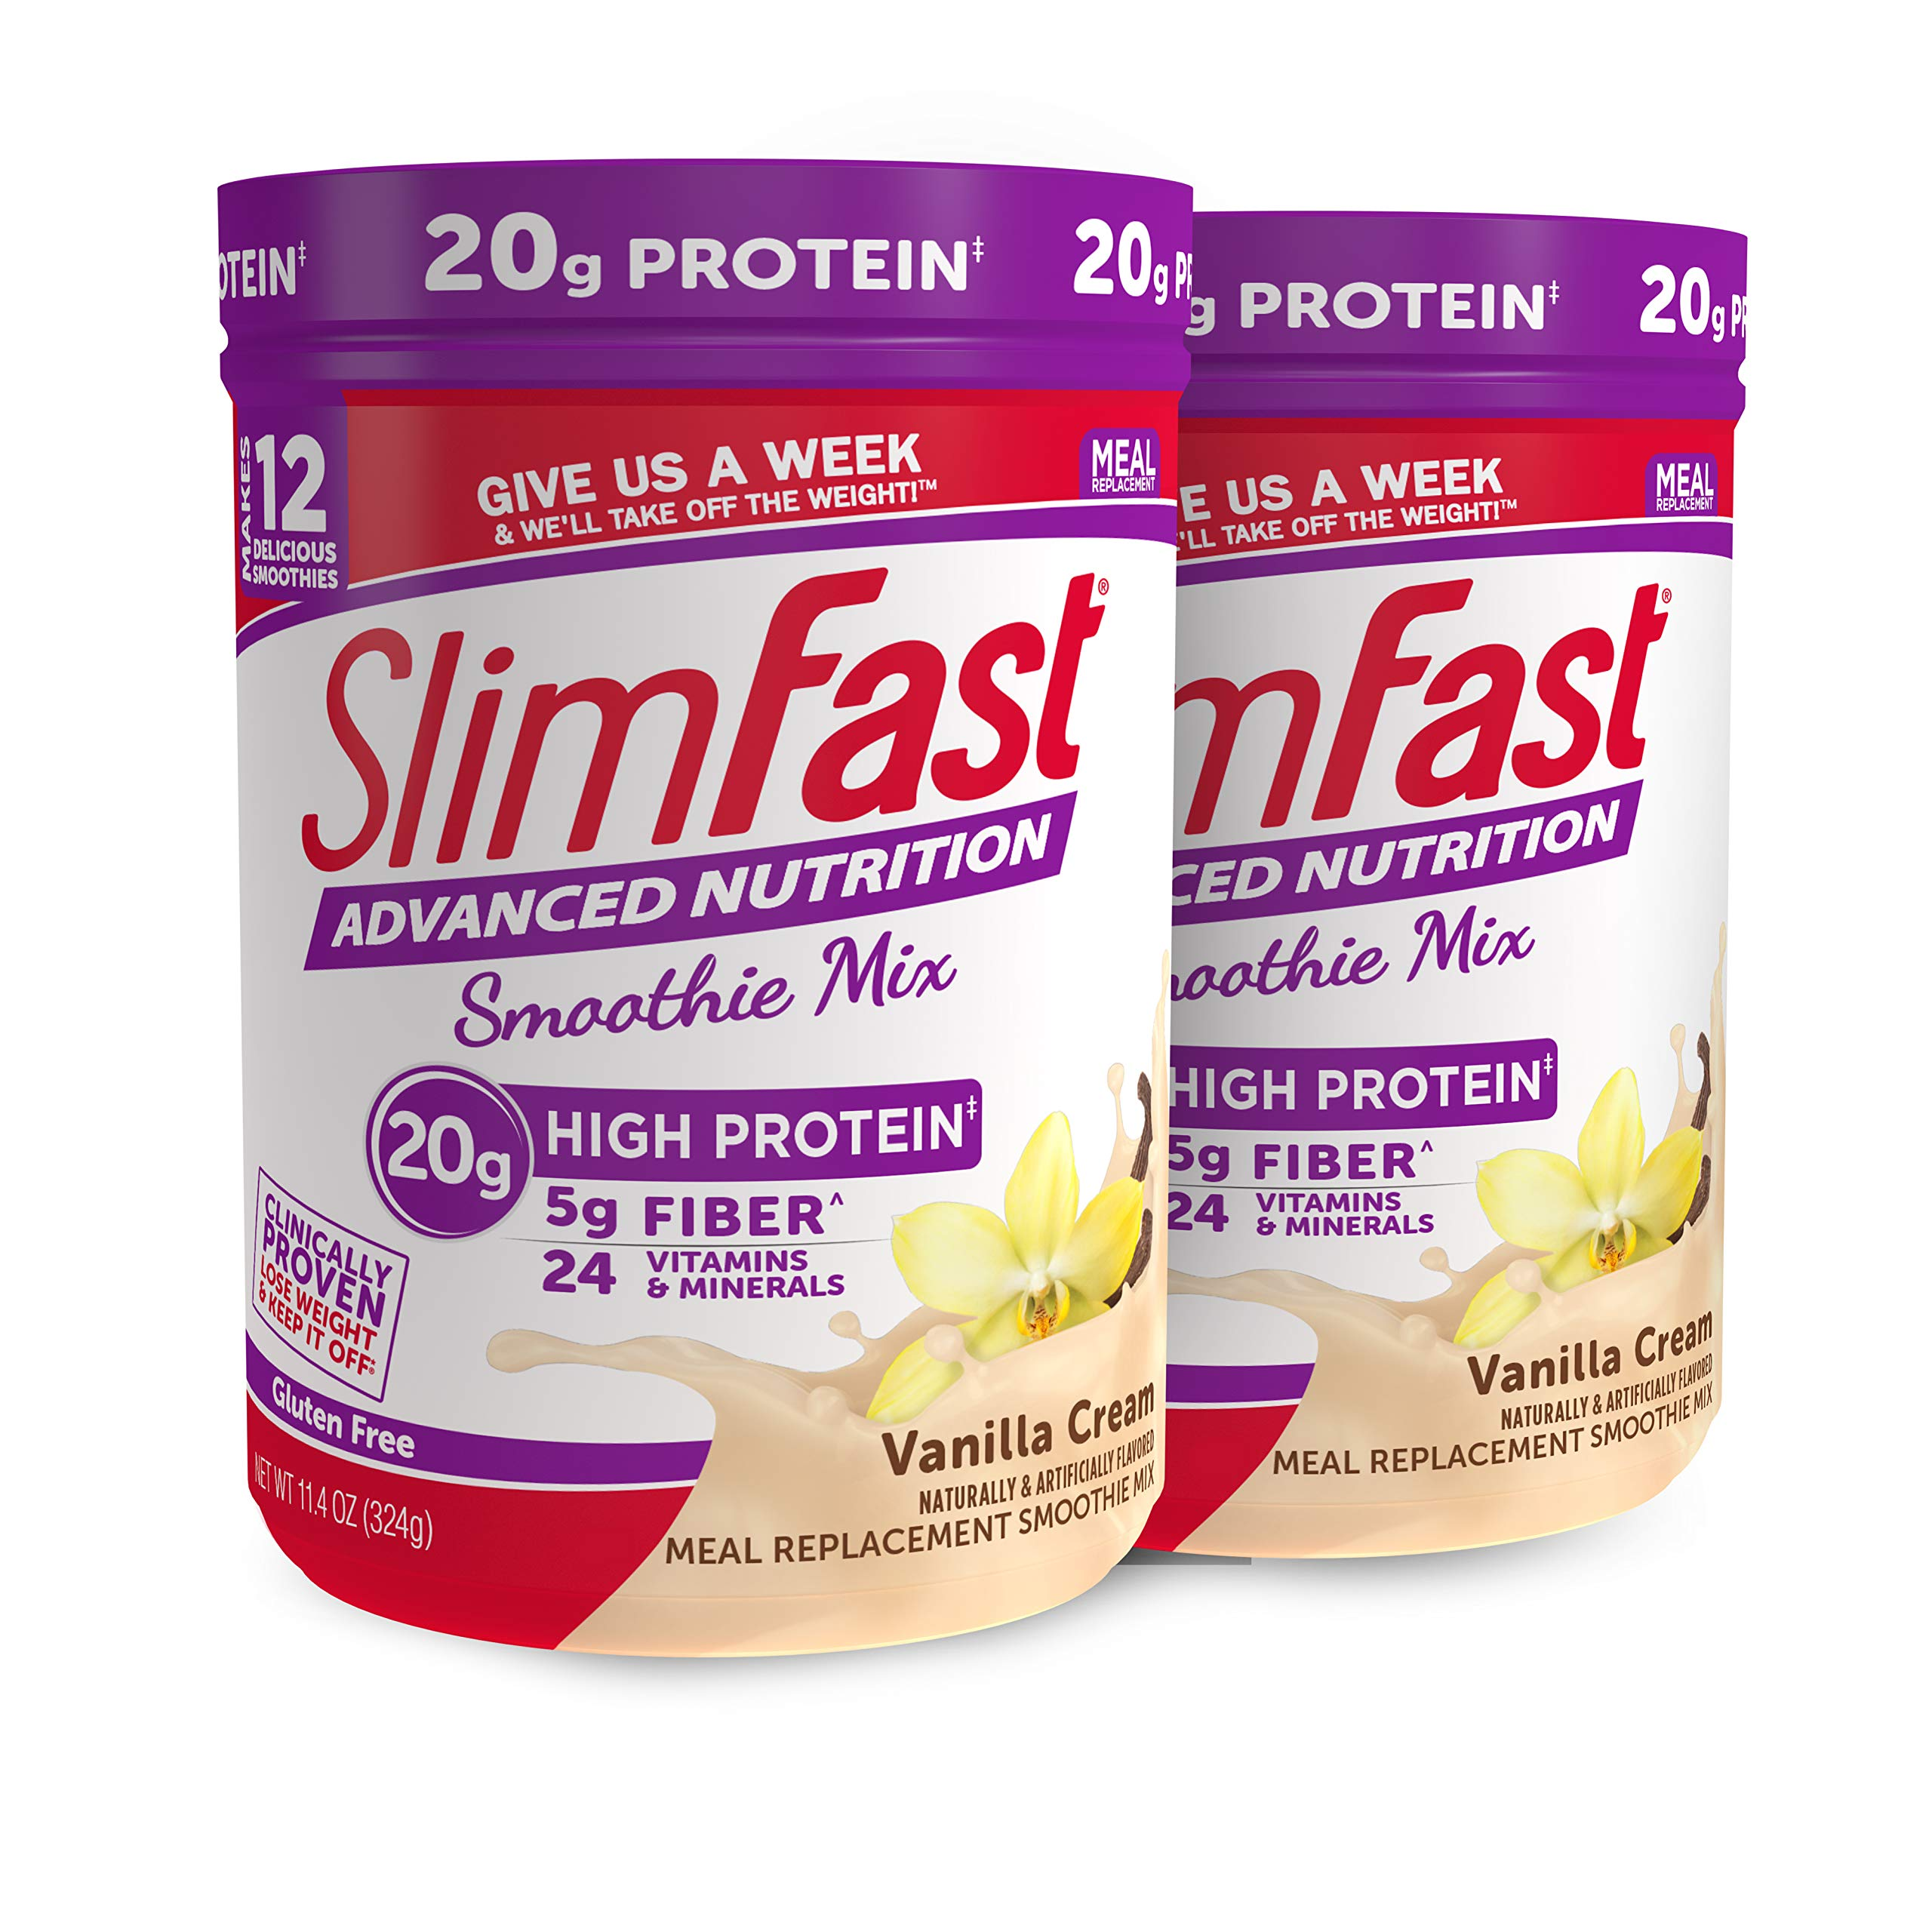 SlimFast Advanced Nutrition Vanilla Cream Smoothie Mix - Weight Loss Meal Replacement - 20g of protein - 11.01 oz. Canister - 12 servings Pack of 2 by SlimFast